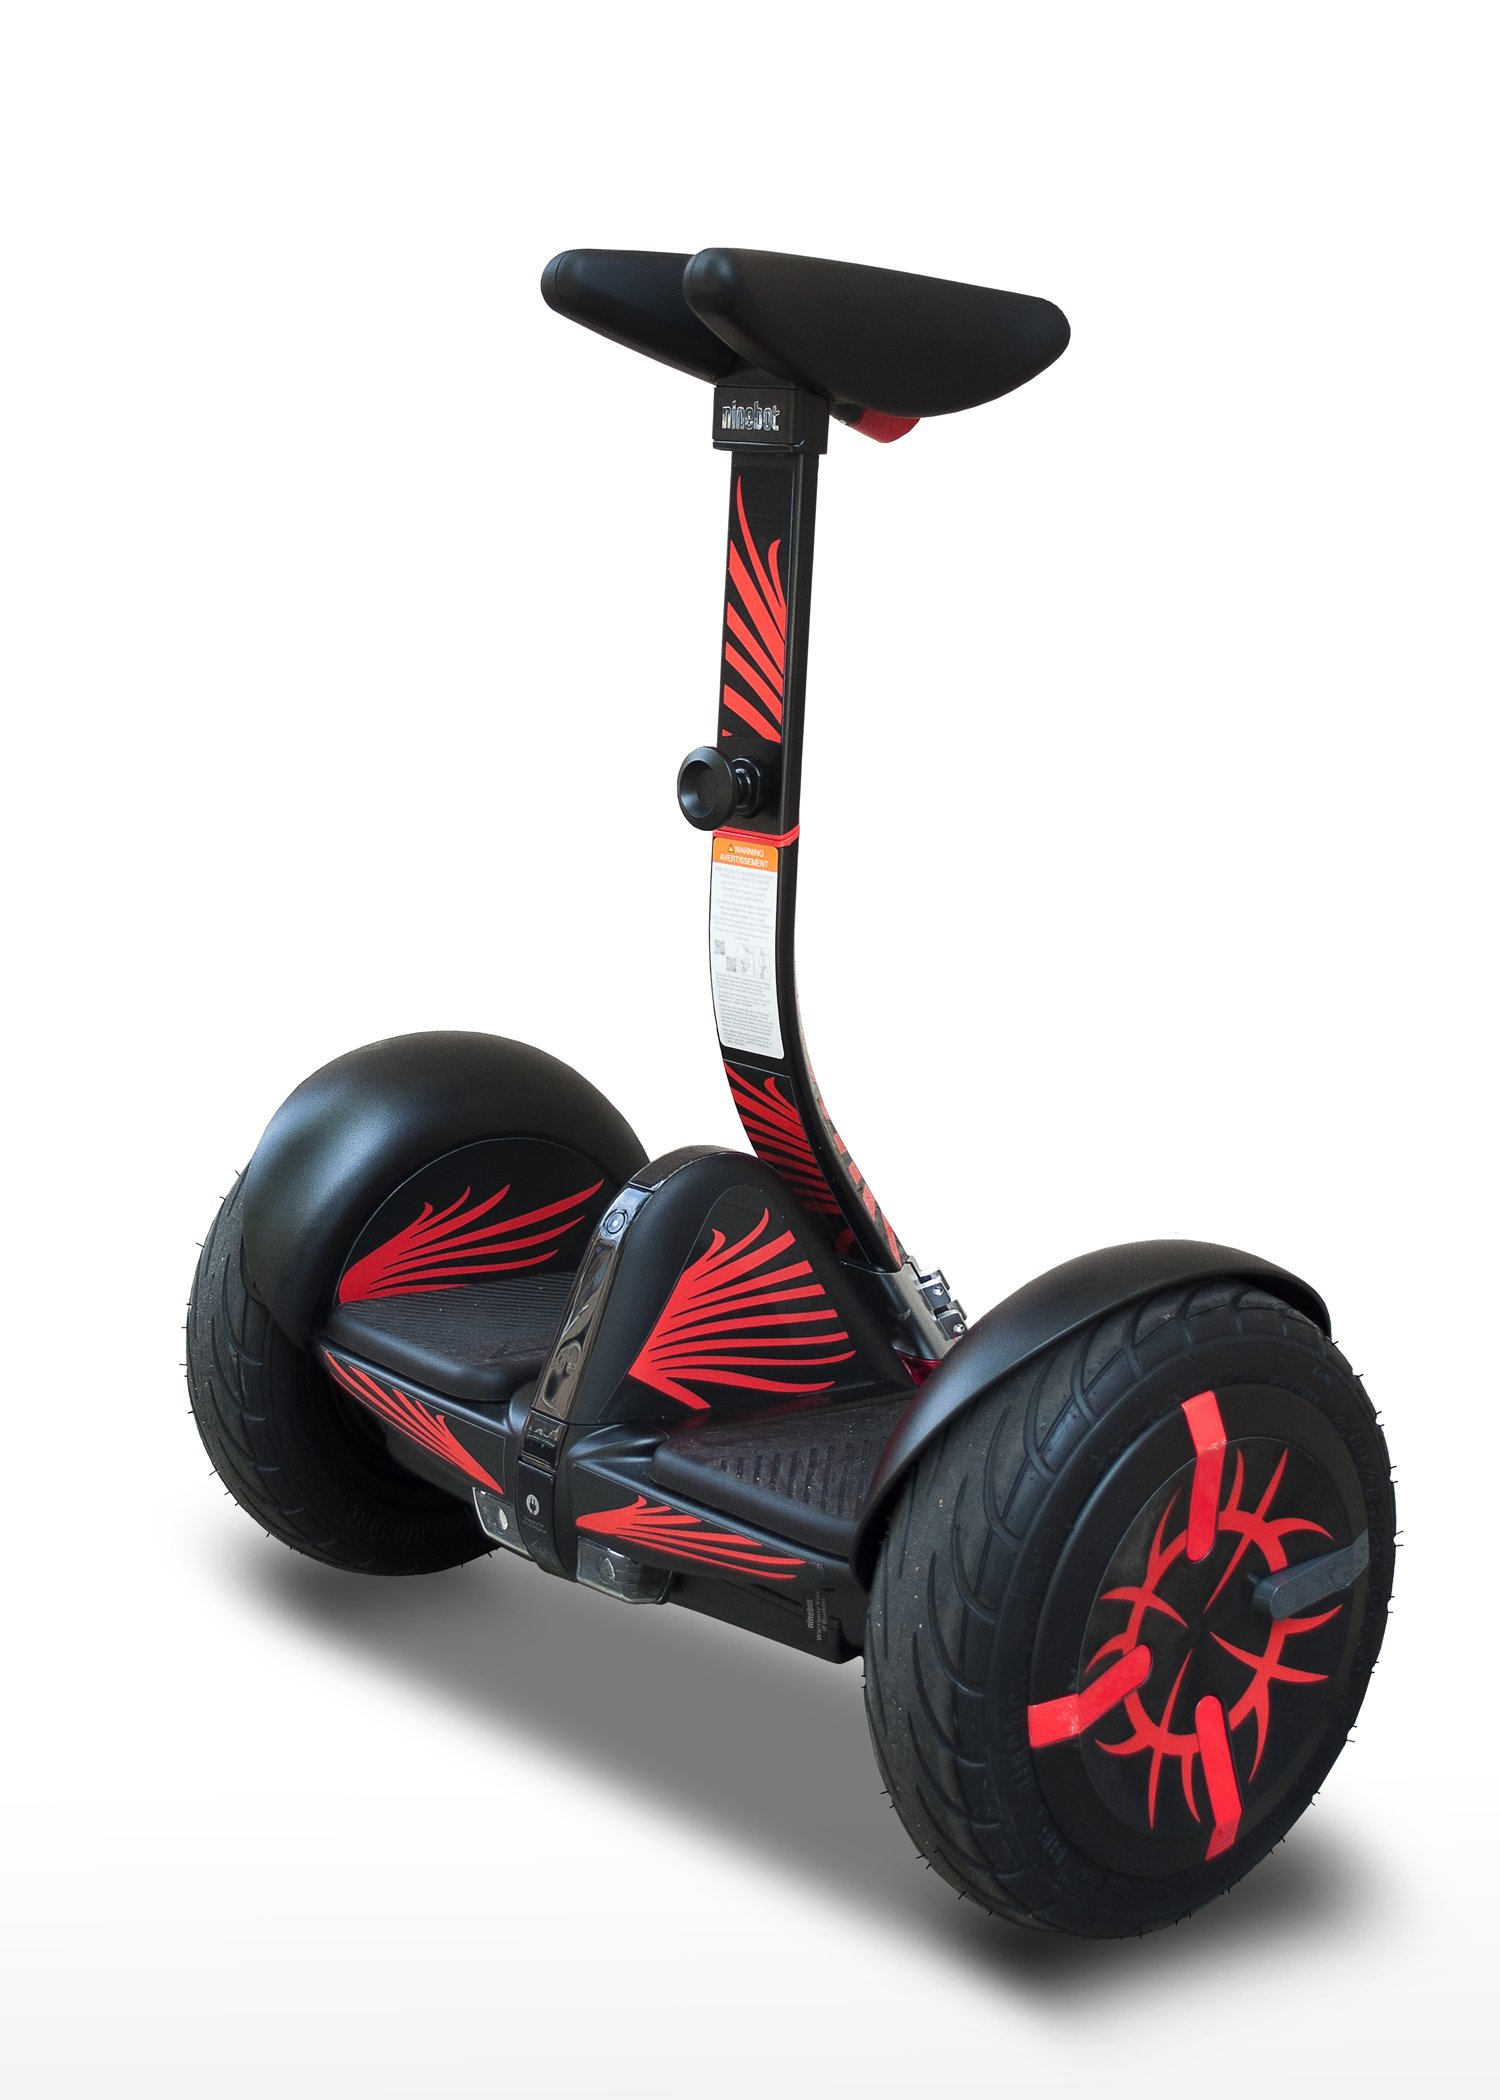 More4Mini Kit for Segway Mini Pro - Flames (Does not Include Segway MiniPro)